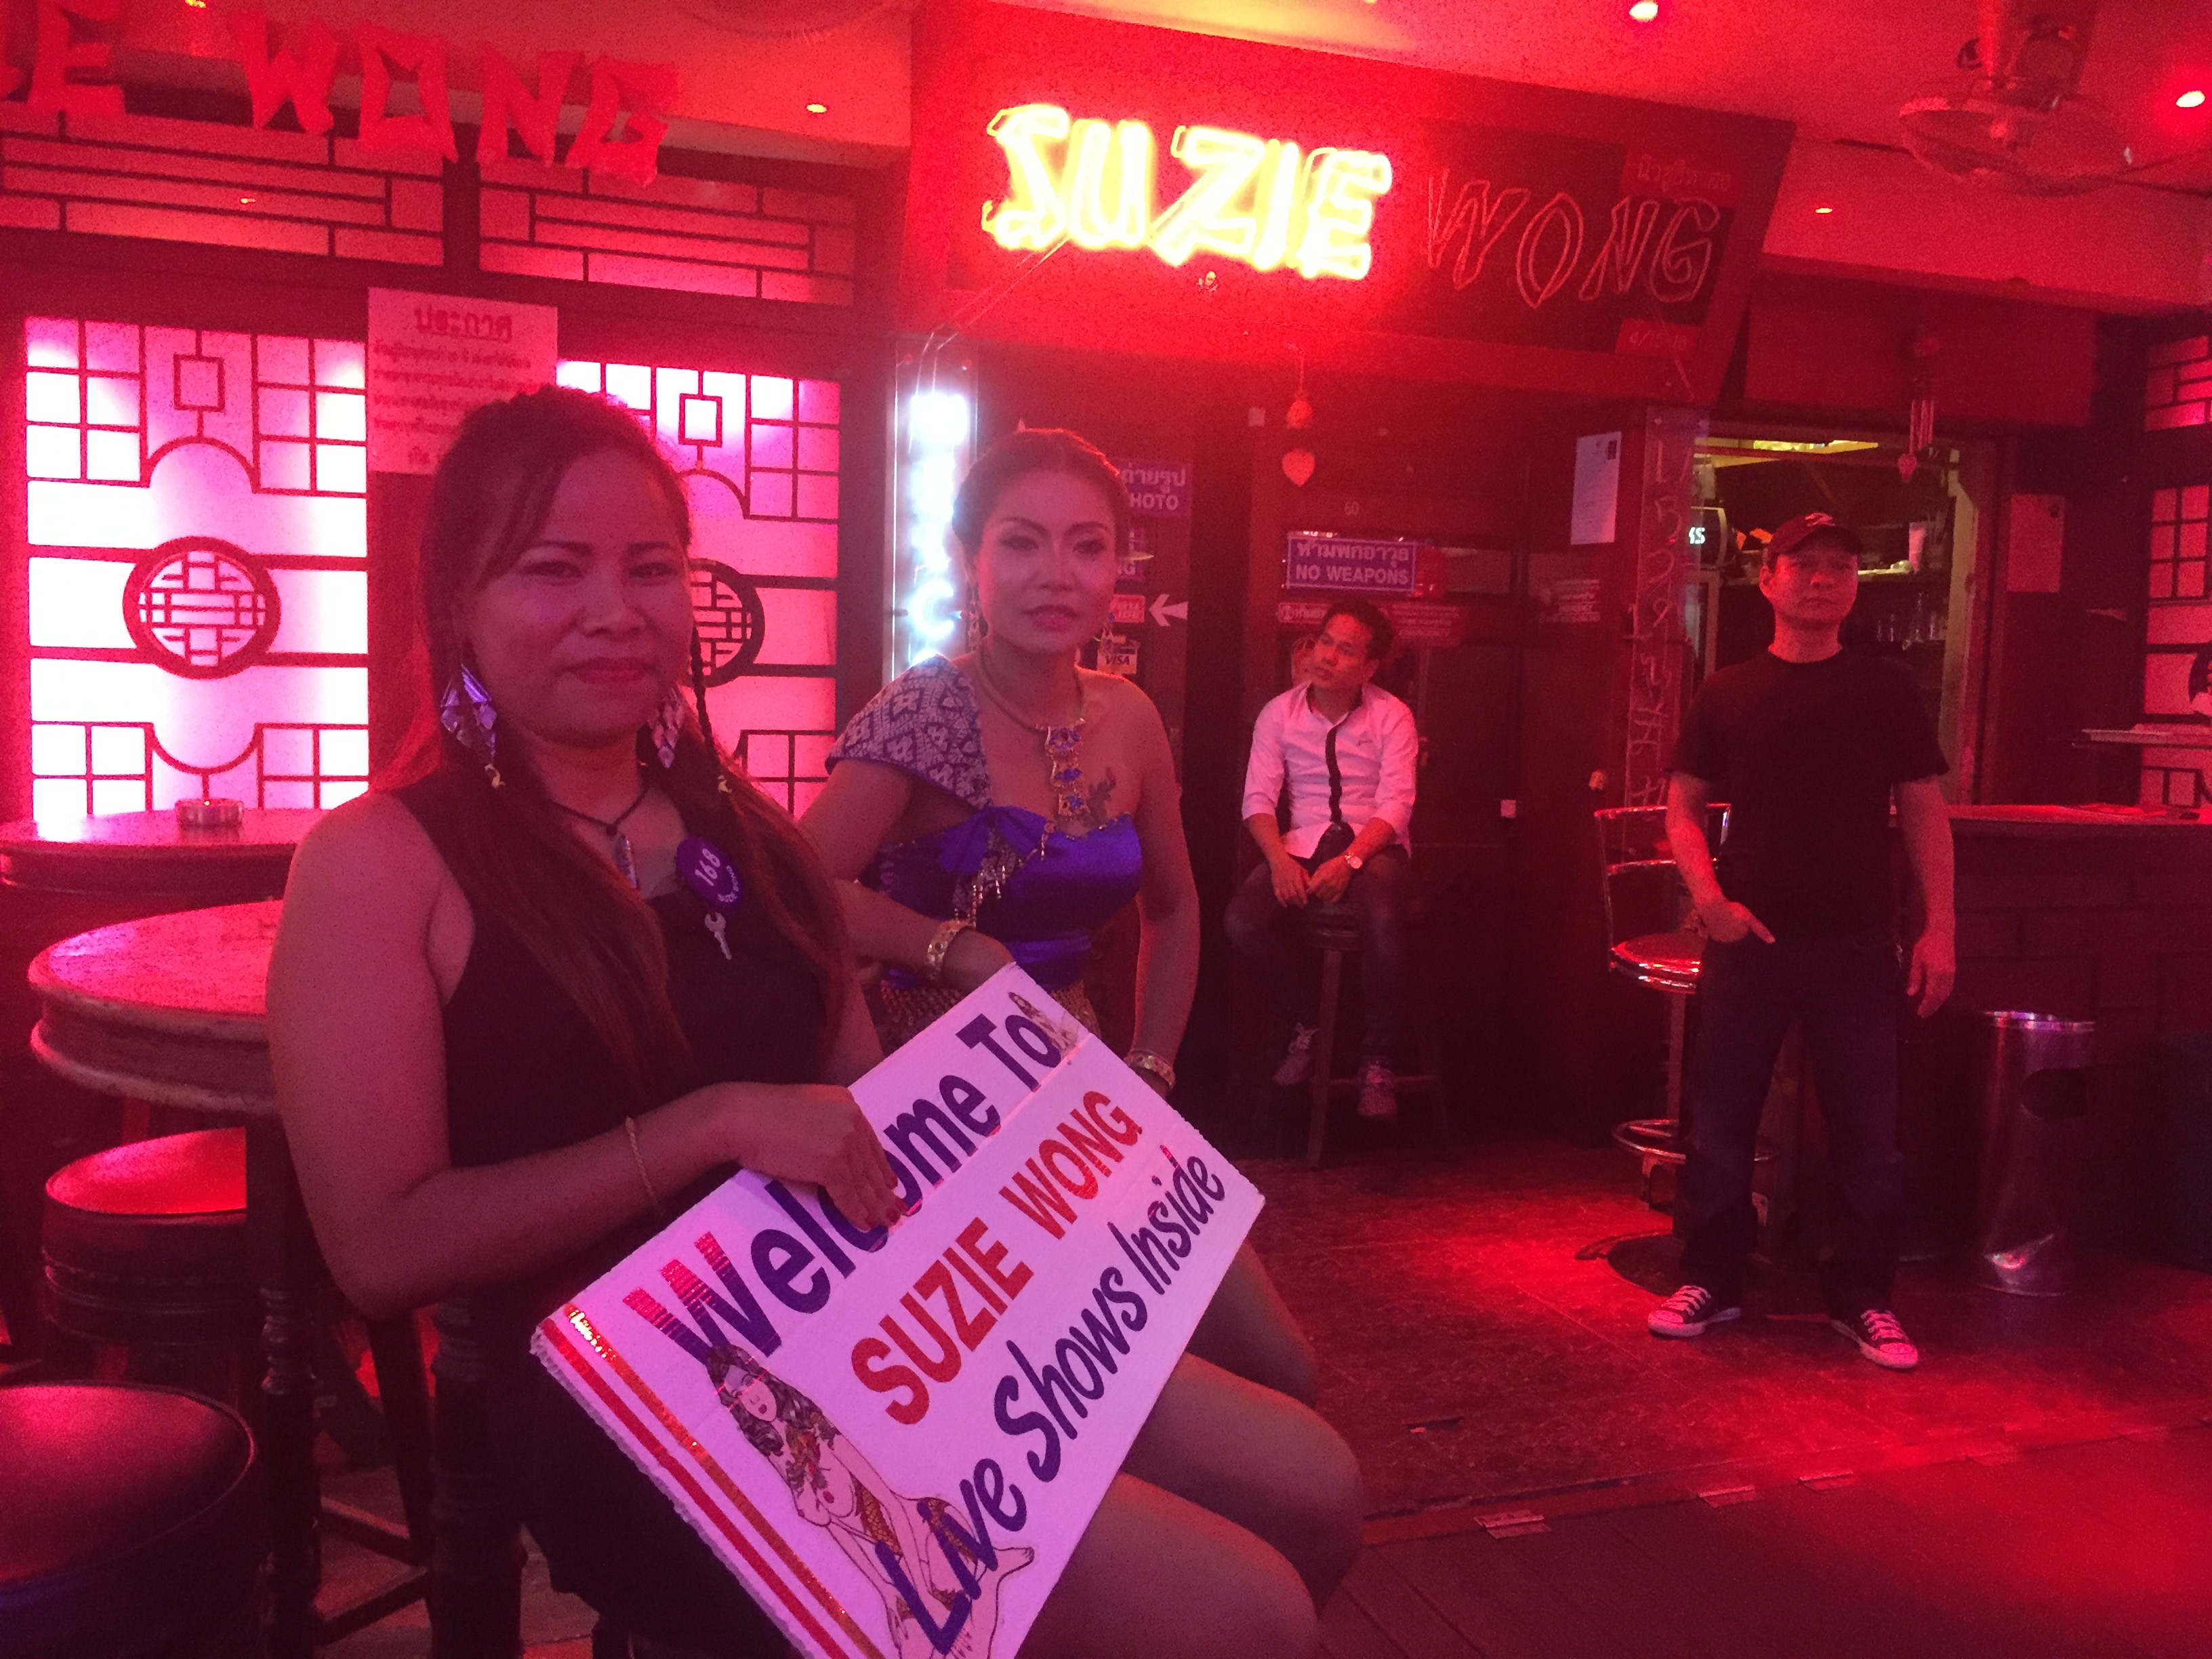 Girls outside Suzie Wong bar on Soi Cowboy a month after the Thai king died